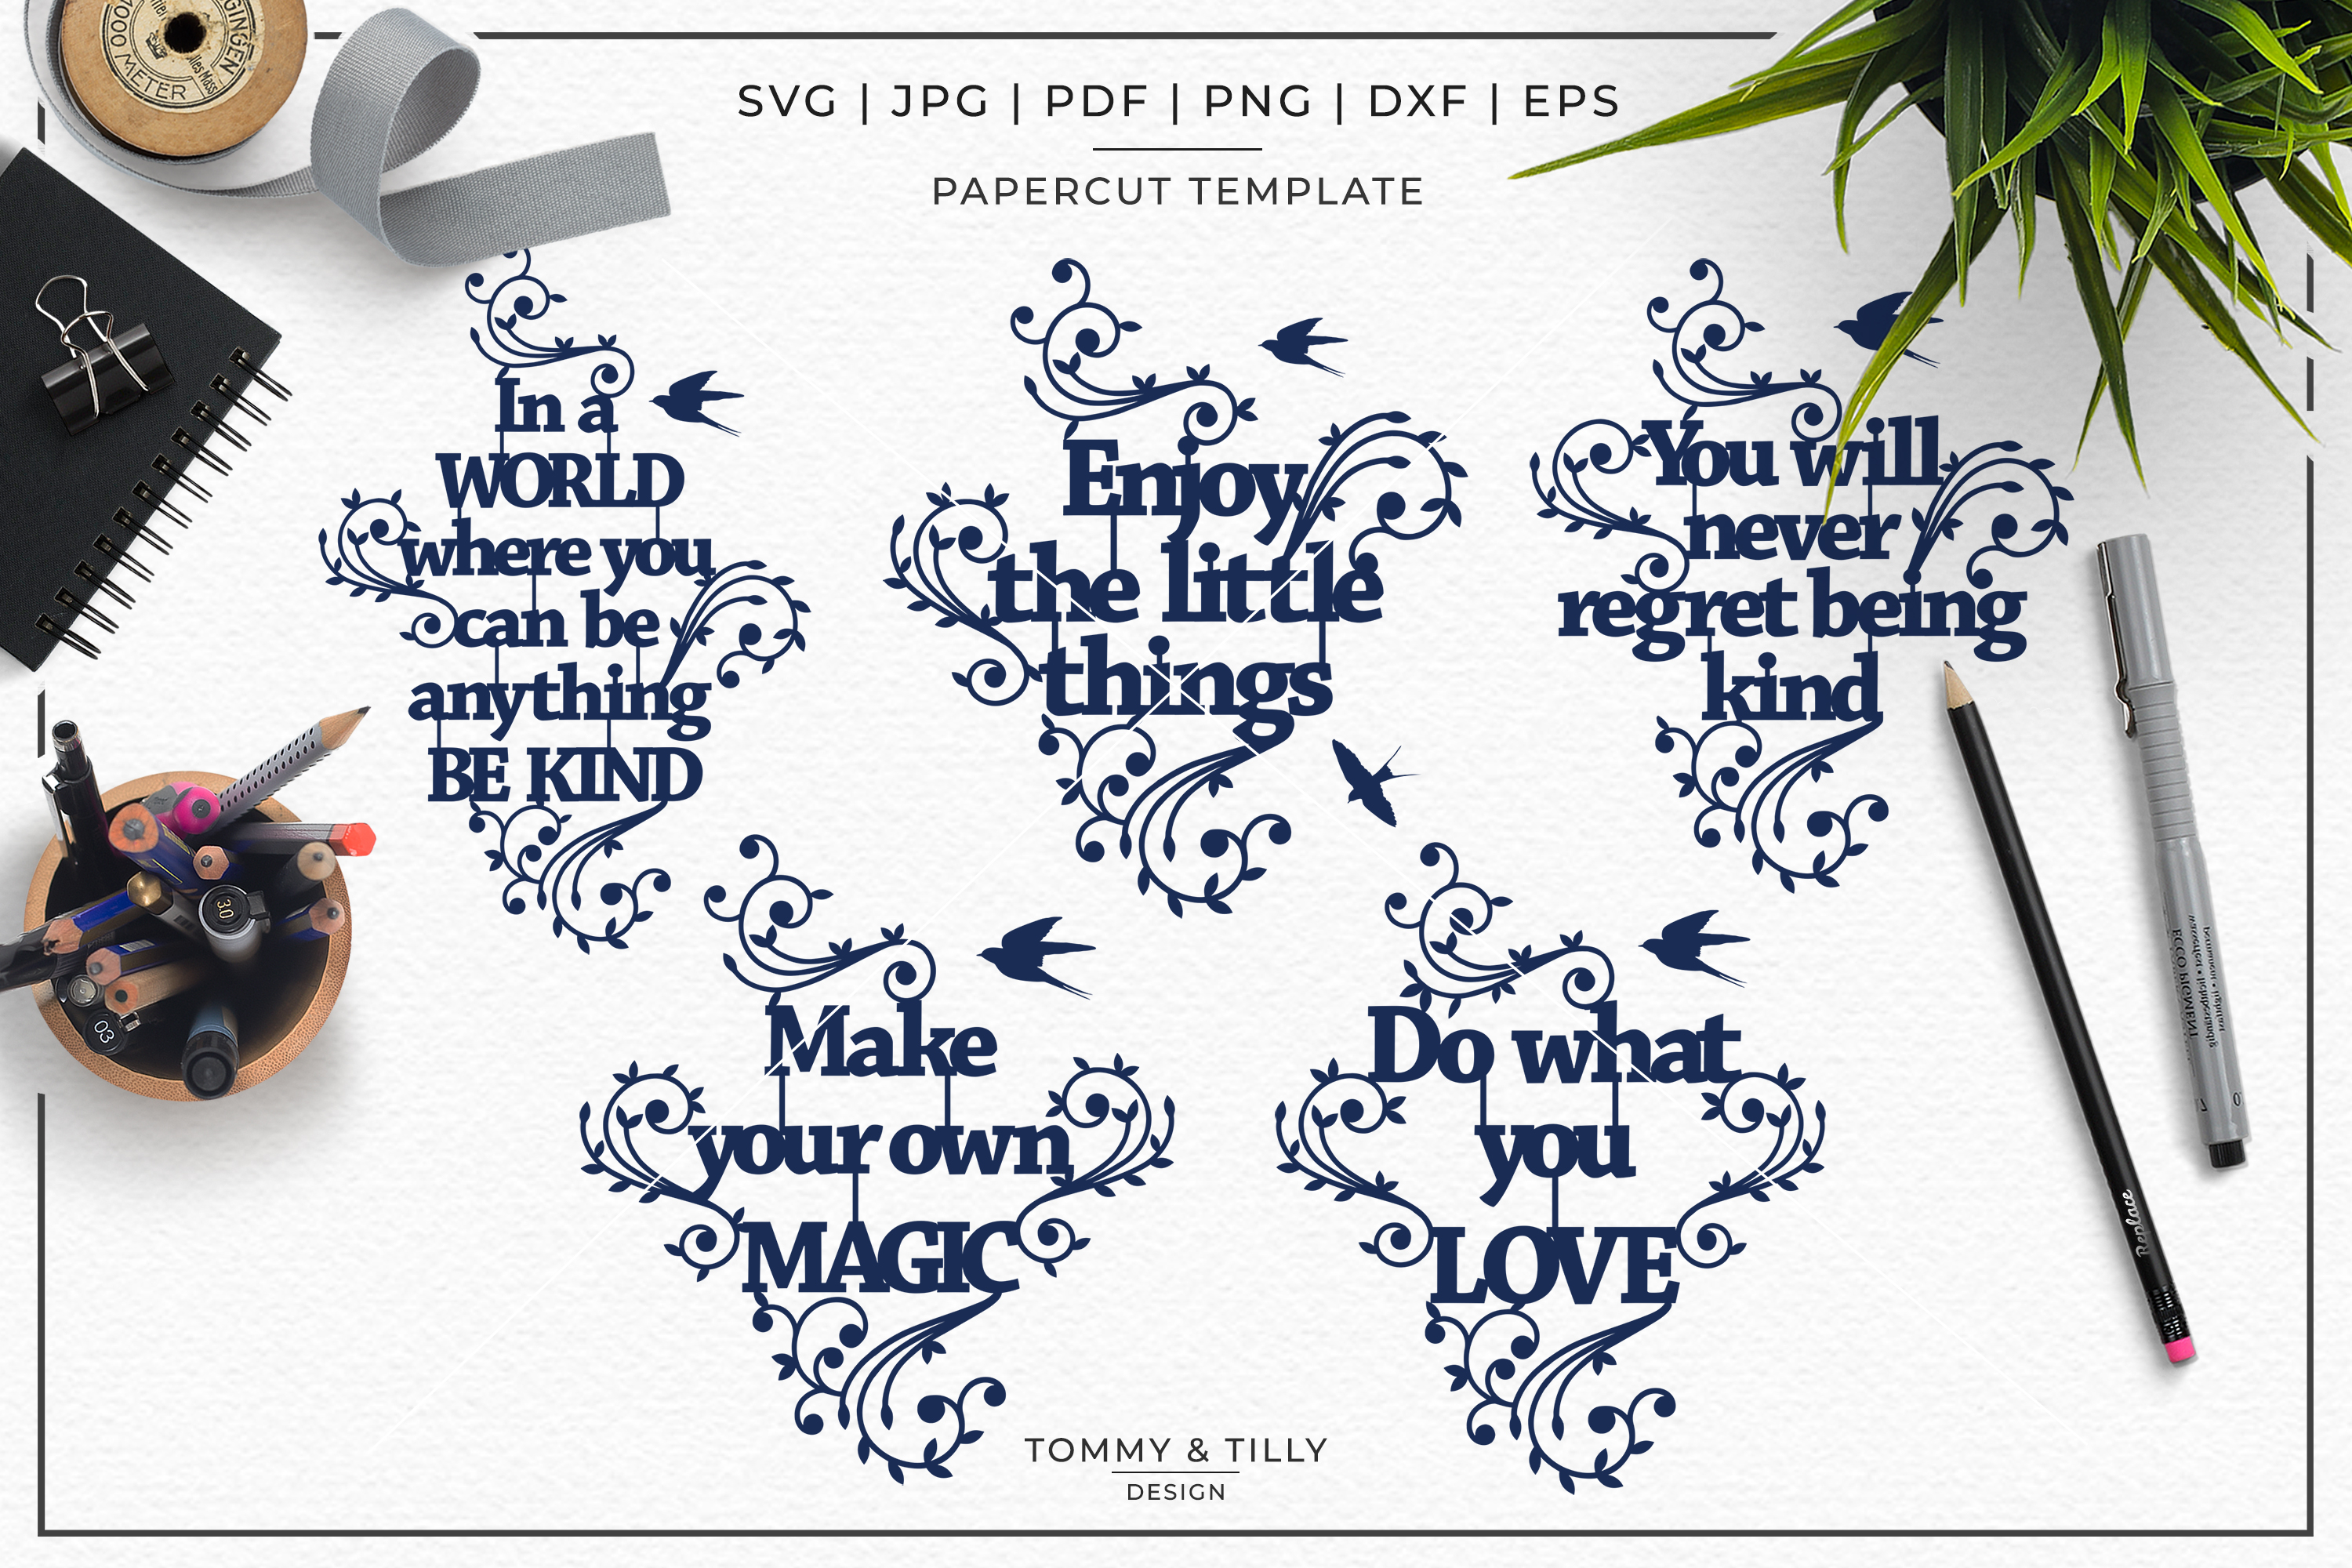 Inspirational Quotes Bundle - Papercut SVG DXF PNG JPG PD example image 3